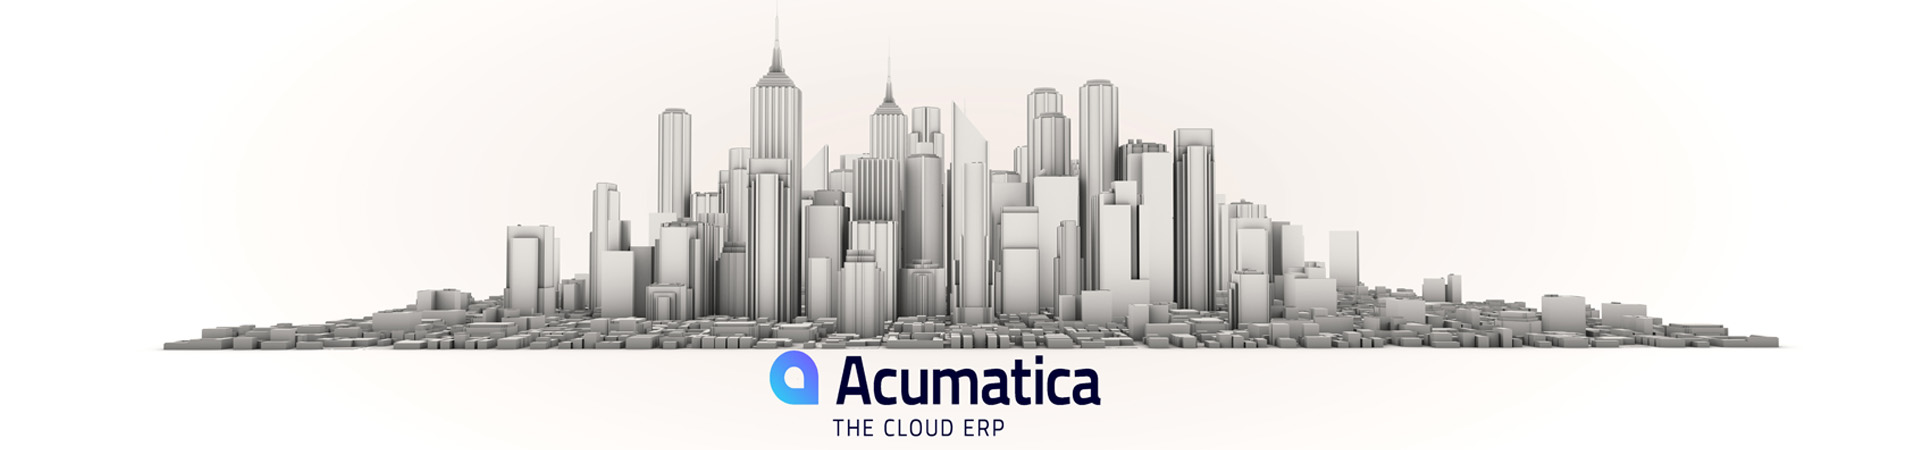 Acumatica Cloud ERP Industries New York Acumatica ERP Cloud - Stratus Network Technology New York New Jersey NYC Long Island the Hamptons